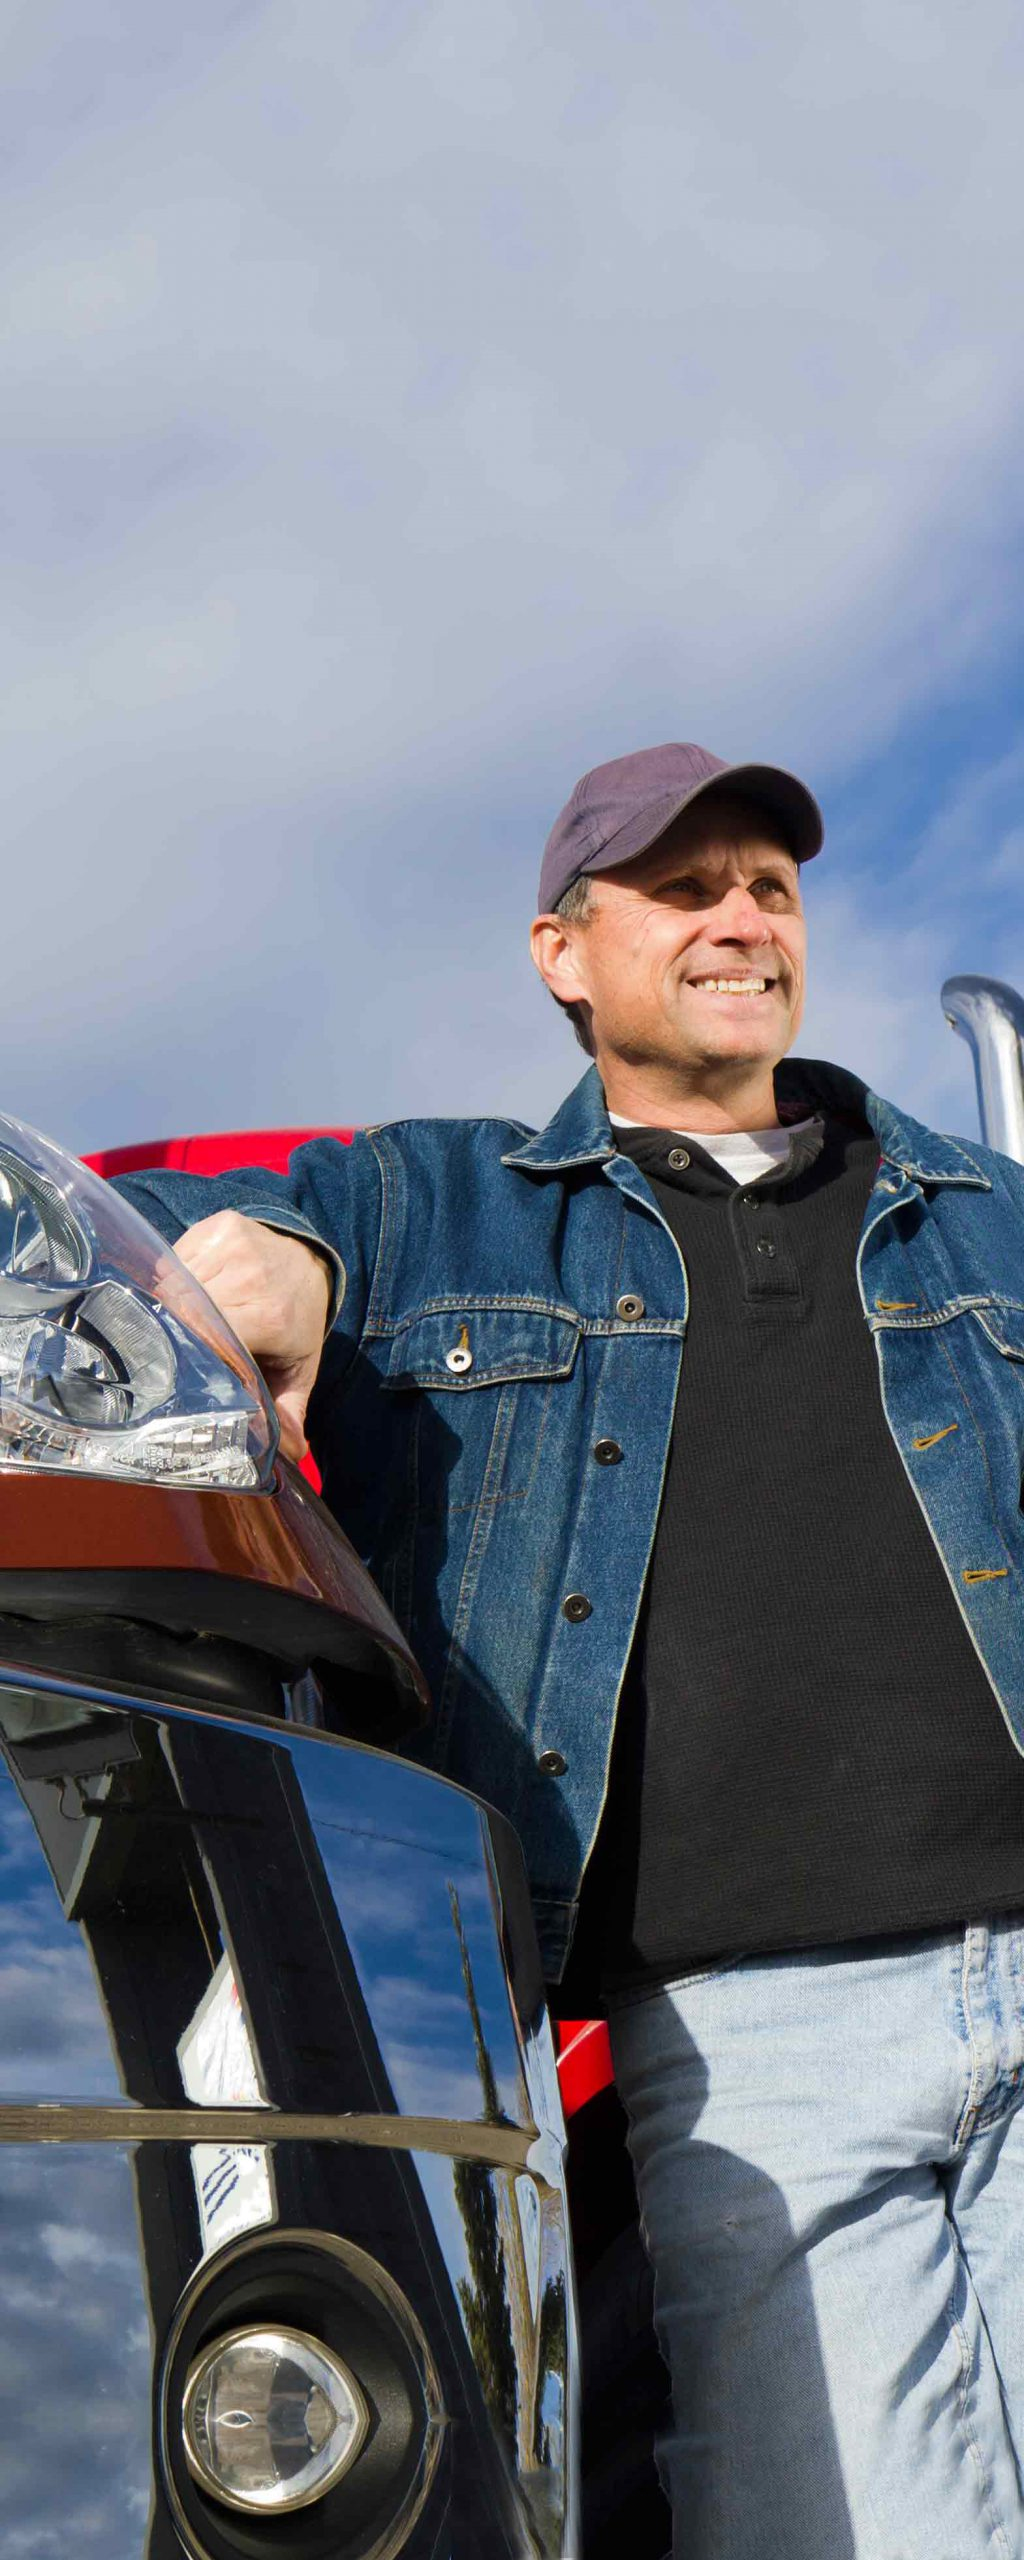 Tractor-trailer owner-operator leaning against leased truck in denim jacket and ball cap.